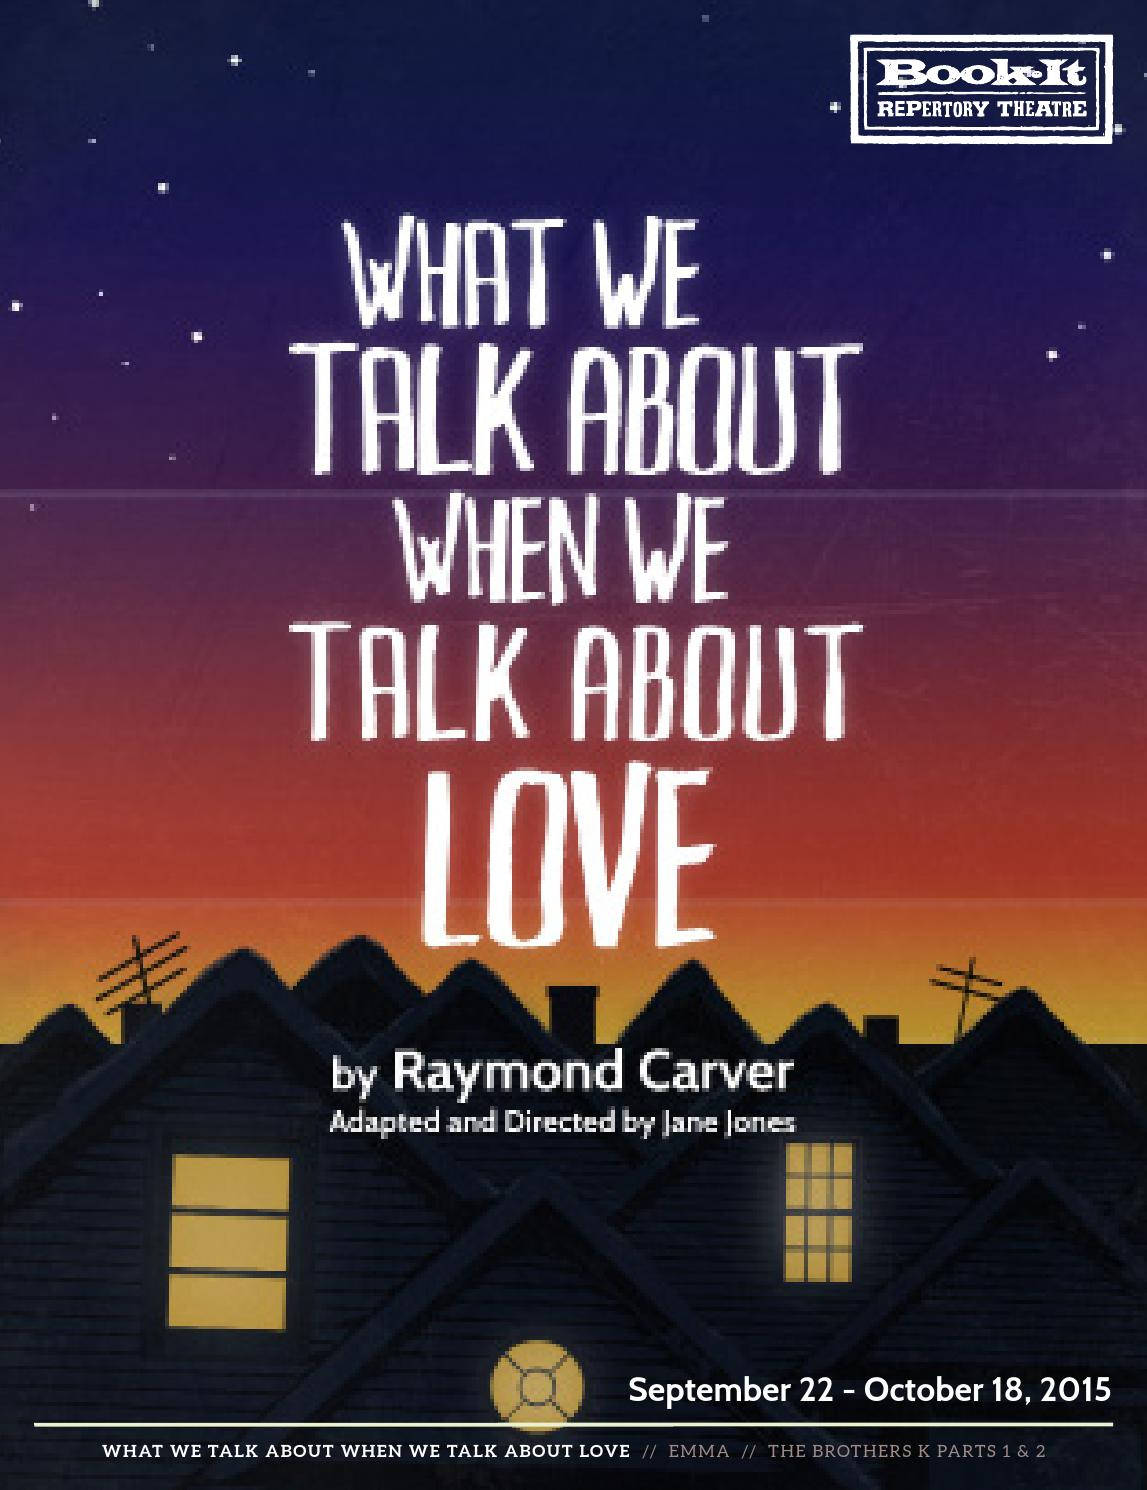 an analysis of love in what we talk about when we talk about love by raymond carver What we talk about when we talk about love is a 1981 collection of short stories by american writer raymond carver, as well as the title of one of the stories in the collection.